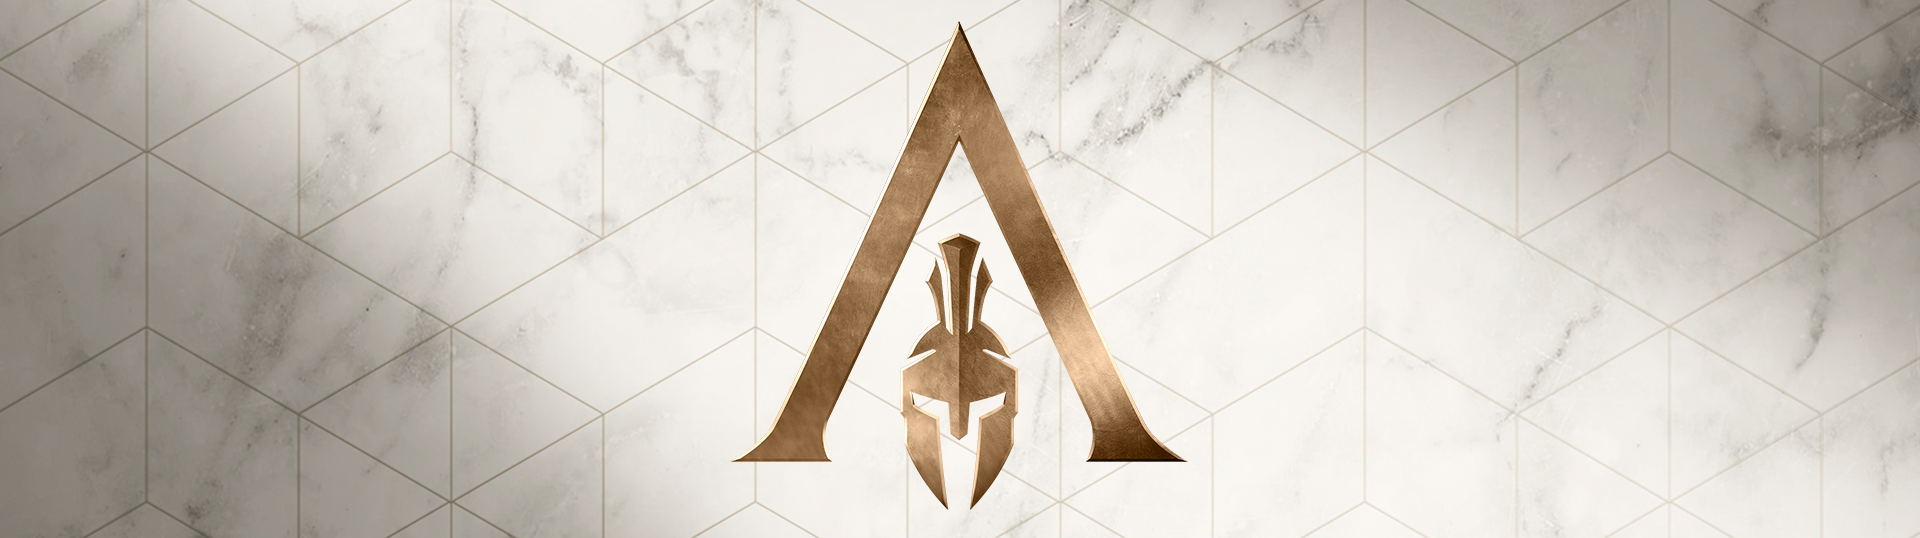 Twitch Prime - Claim your bonus content for Assassin's Creed